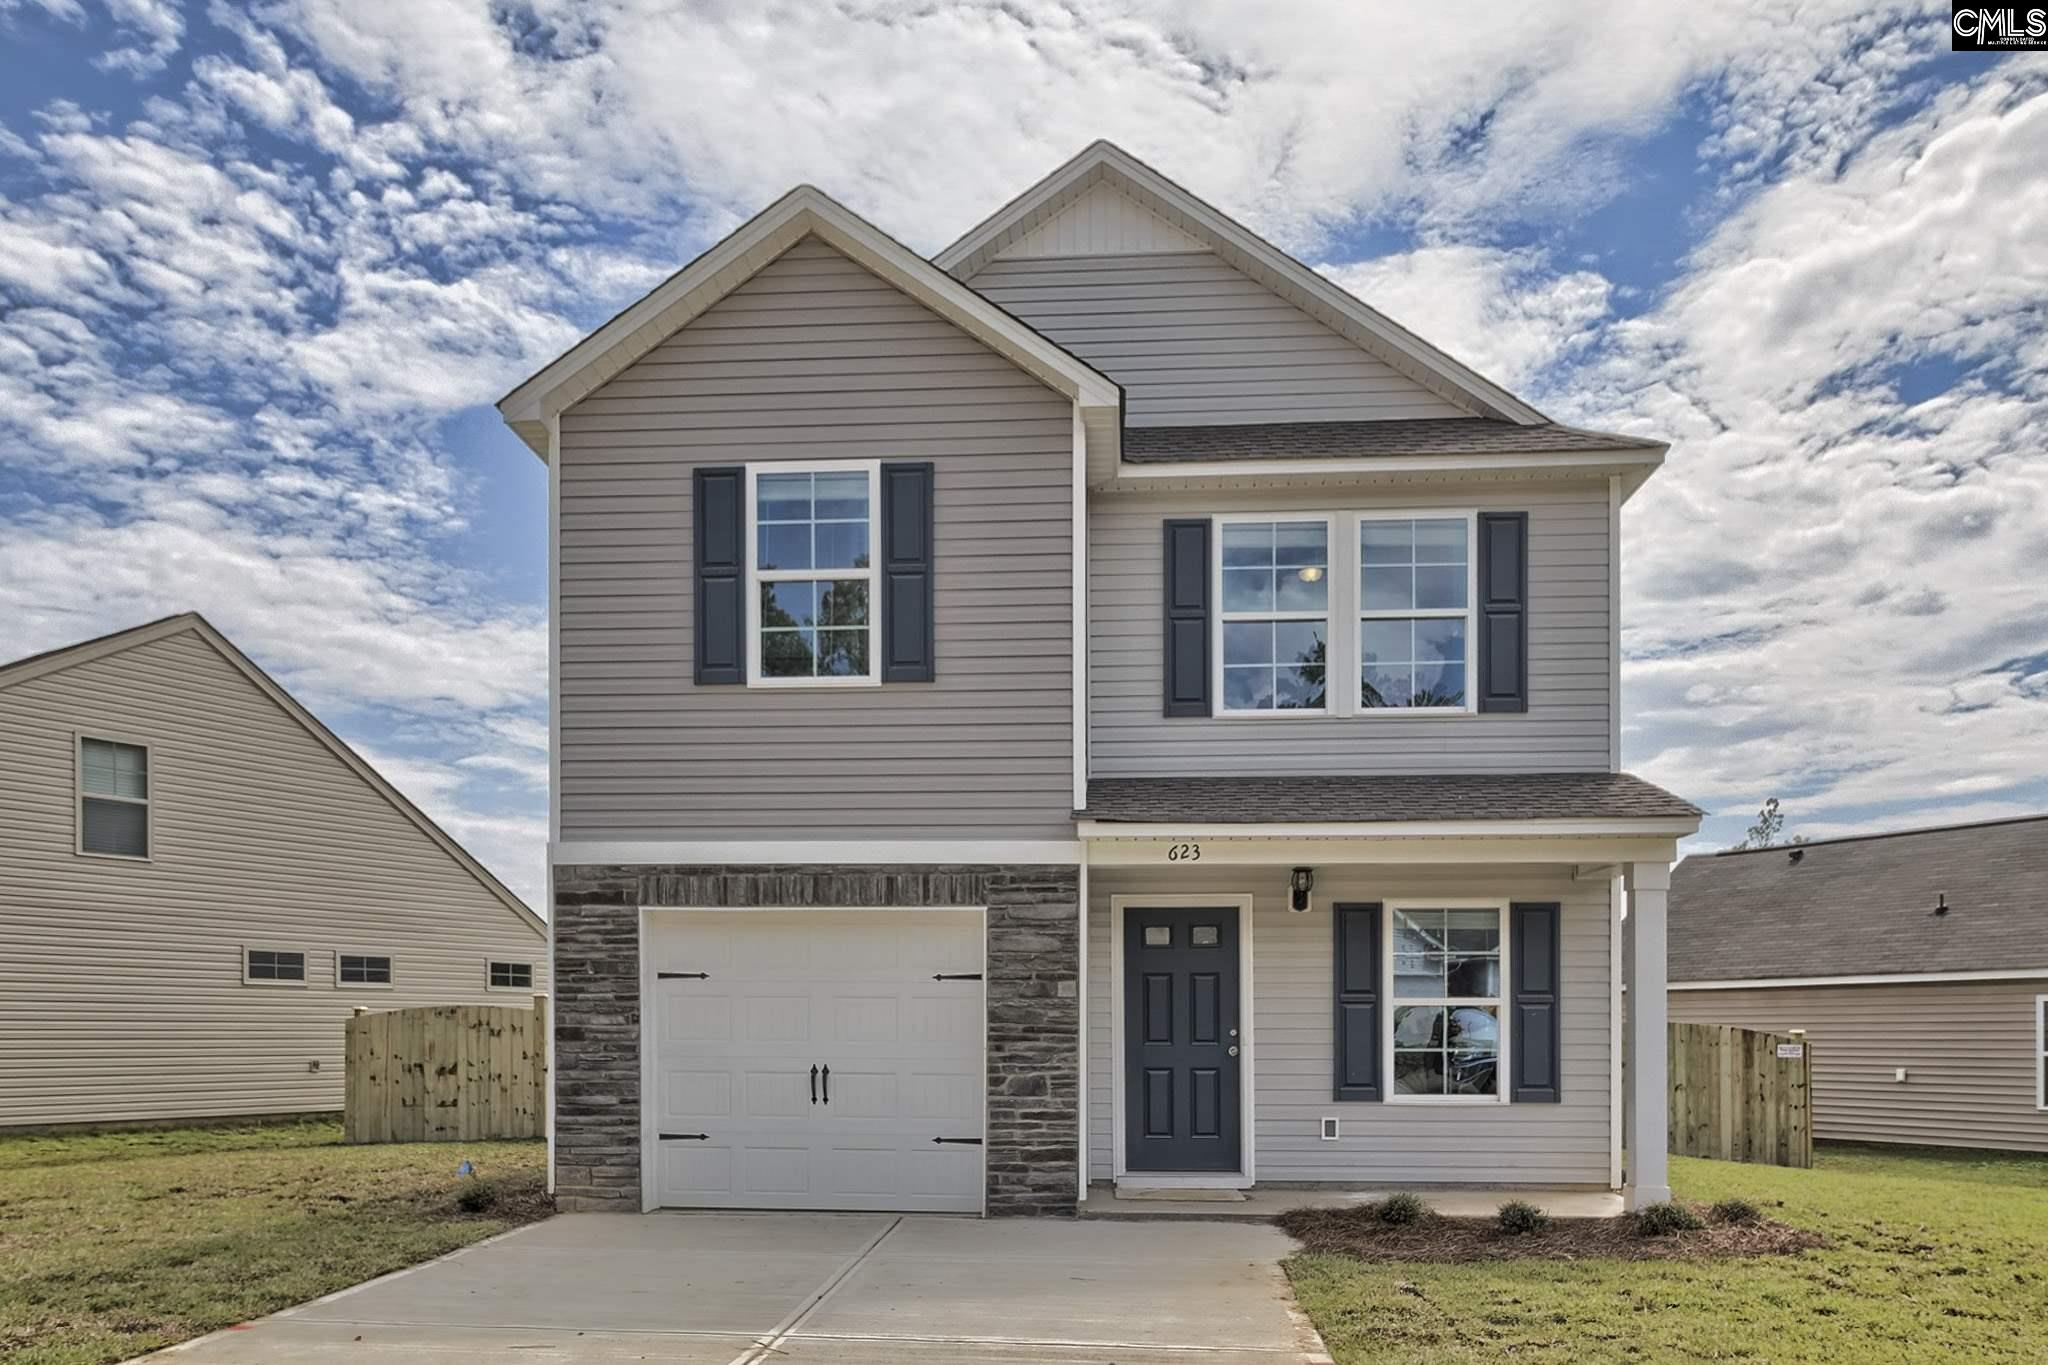 316 Lawndale (lot 122) Gaston, SC 29053